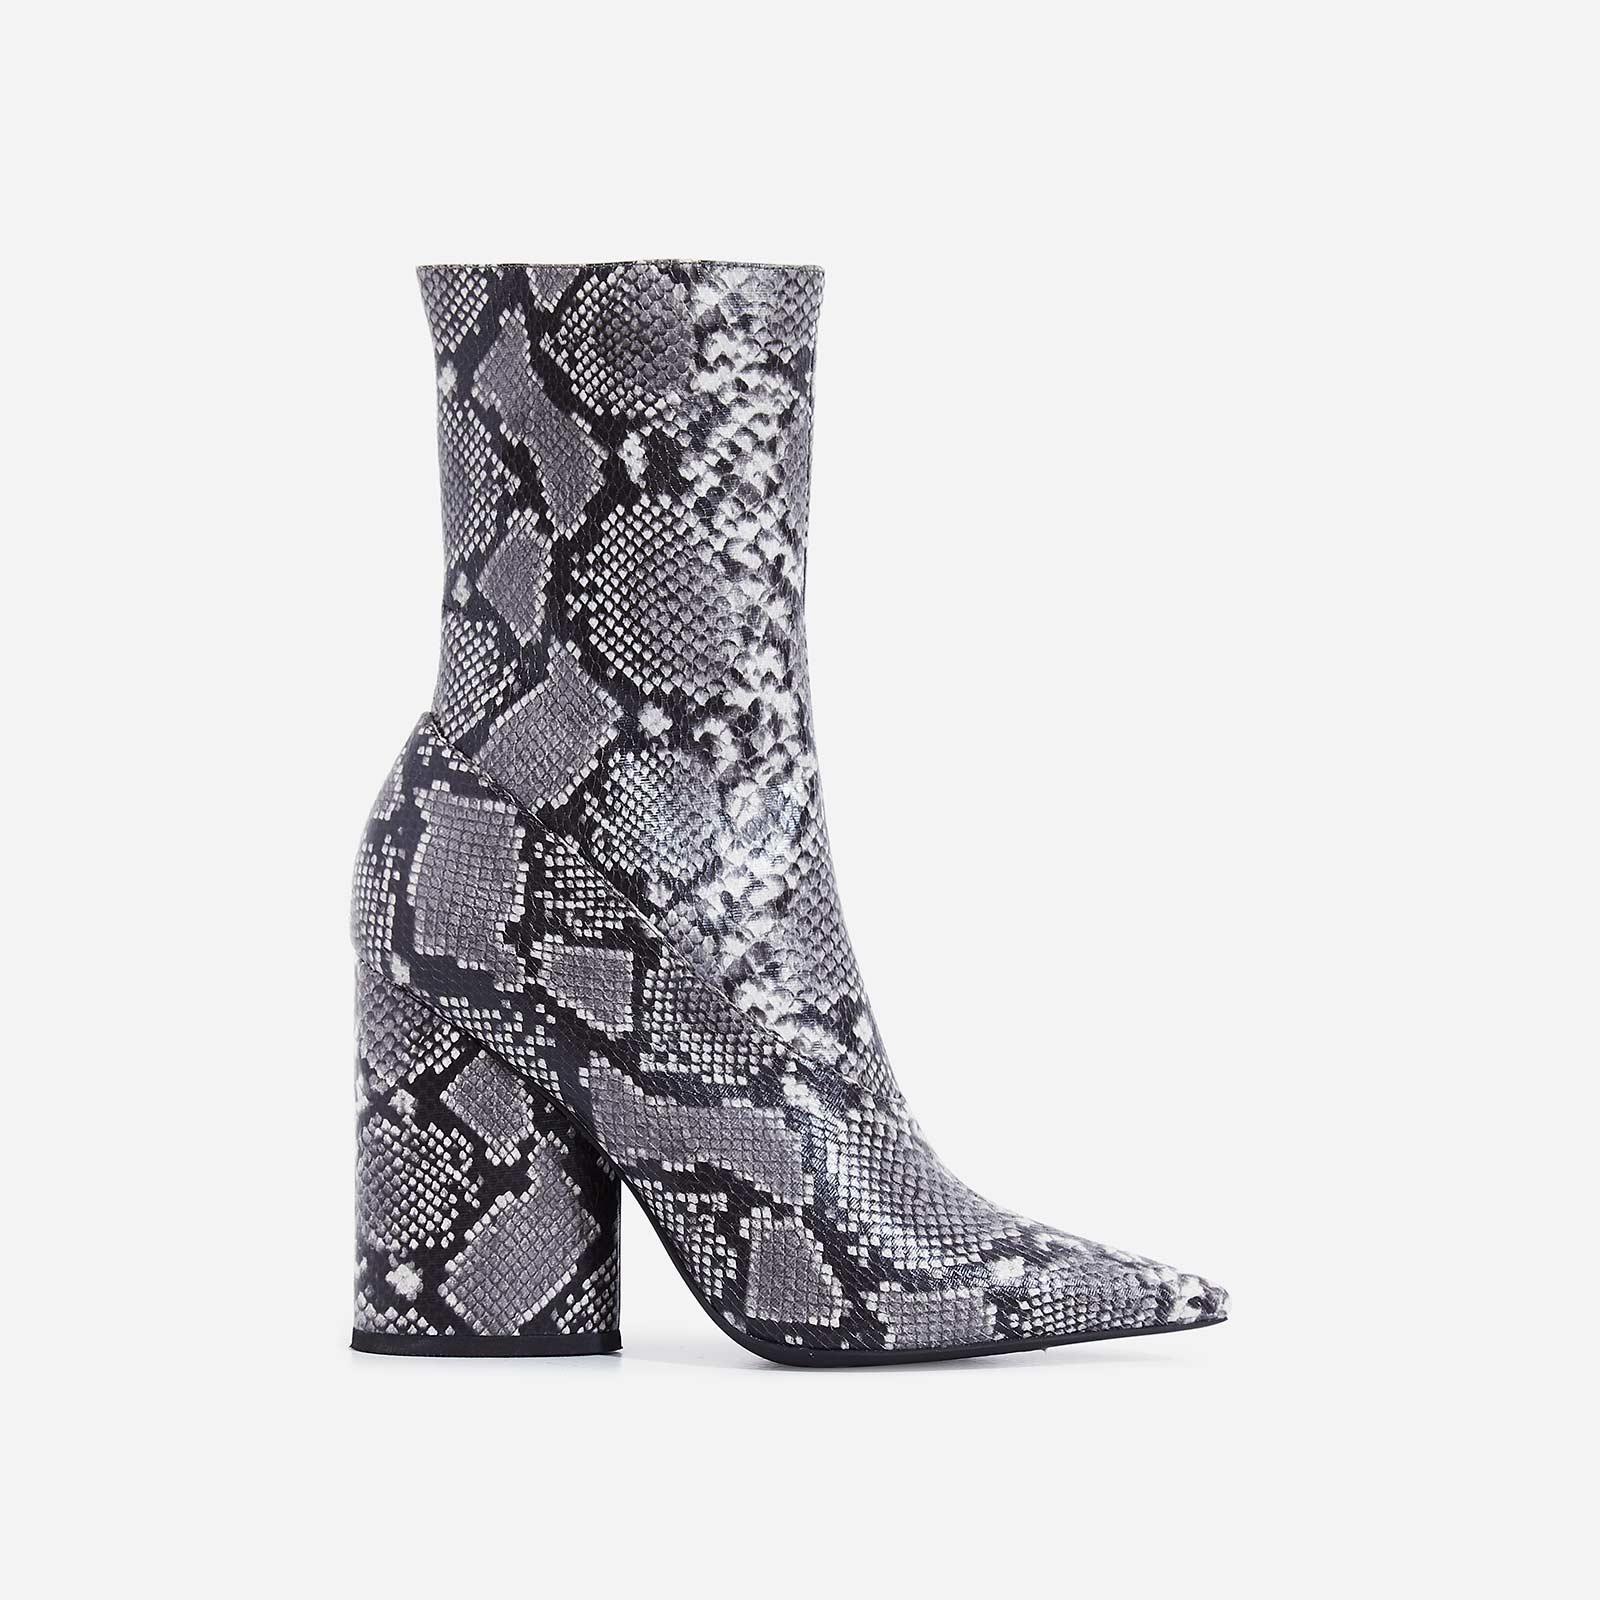 Ameera Block Heel Pointed Ankle Boot In Grey Snake Print Faux Leather